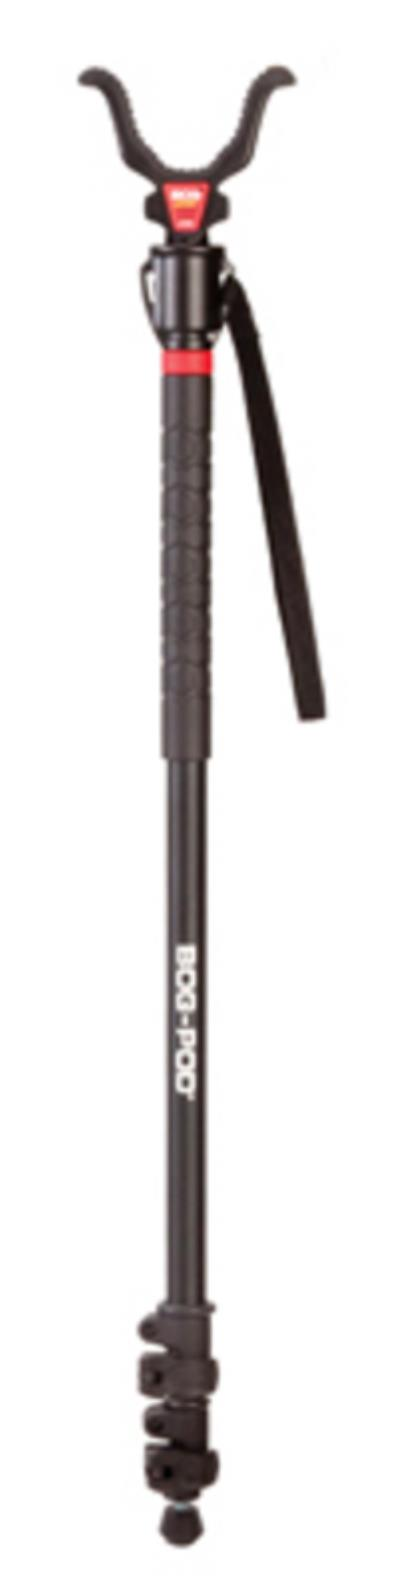 HD-1 Heavy Duty Monopod Tall